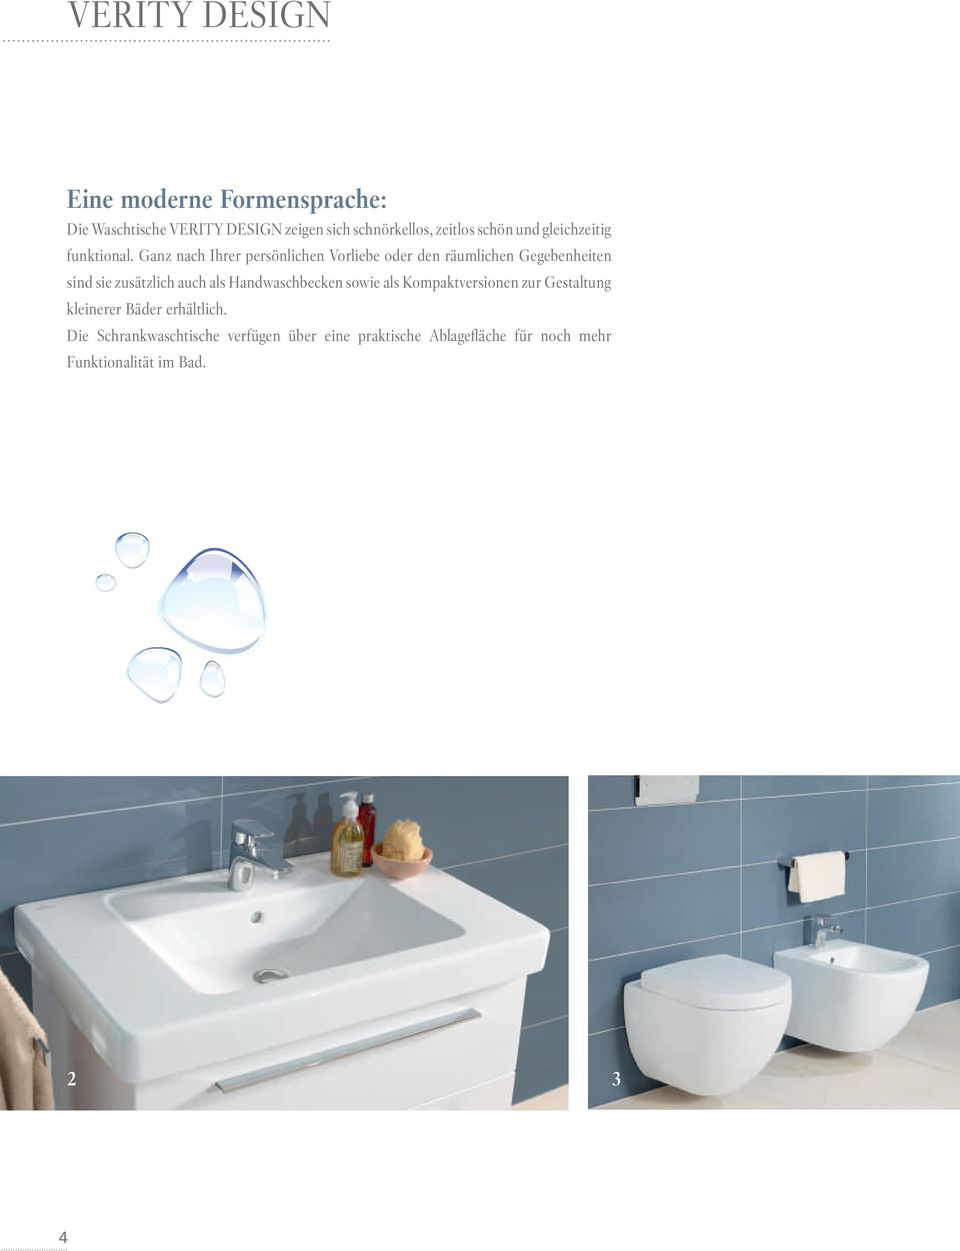 Badezimmer Design Pdf Verity Design Die Markenkollektion Für Das Moderne Bad Pdf